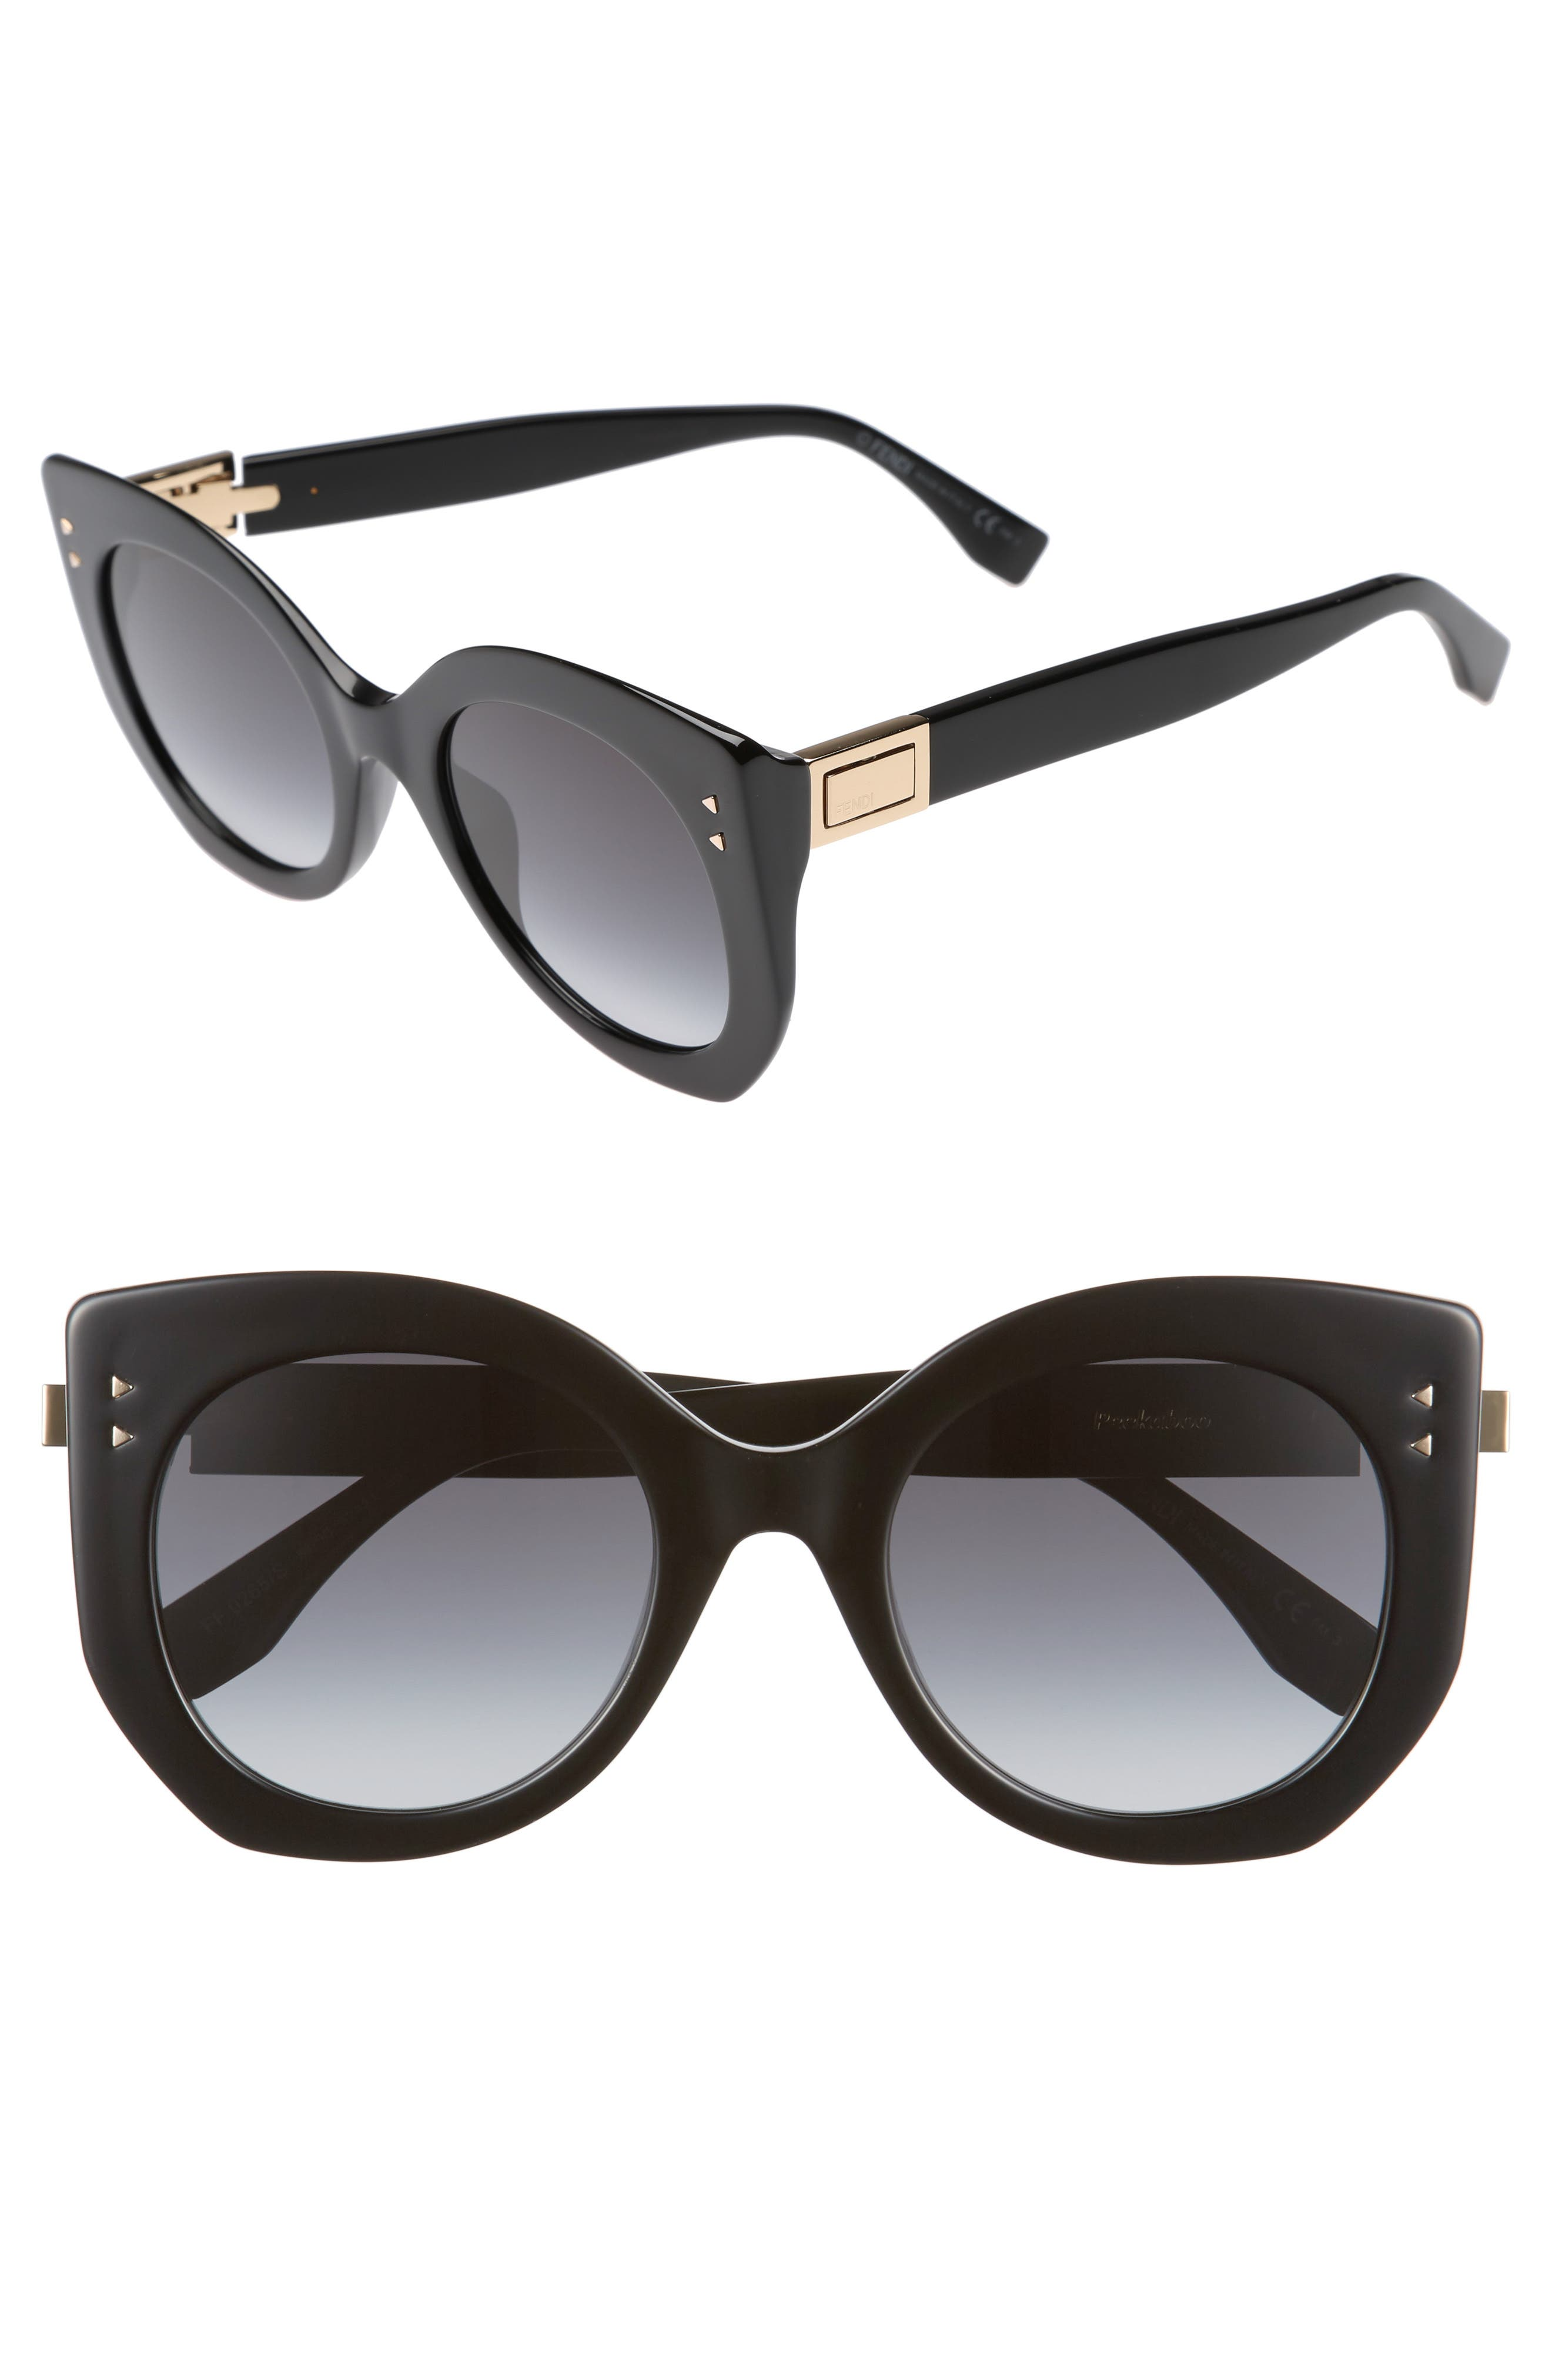 52mm Butterfly Sunglasses,                             Main thumbnail 1, color,                             Black